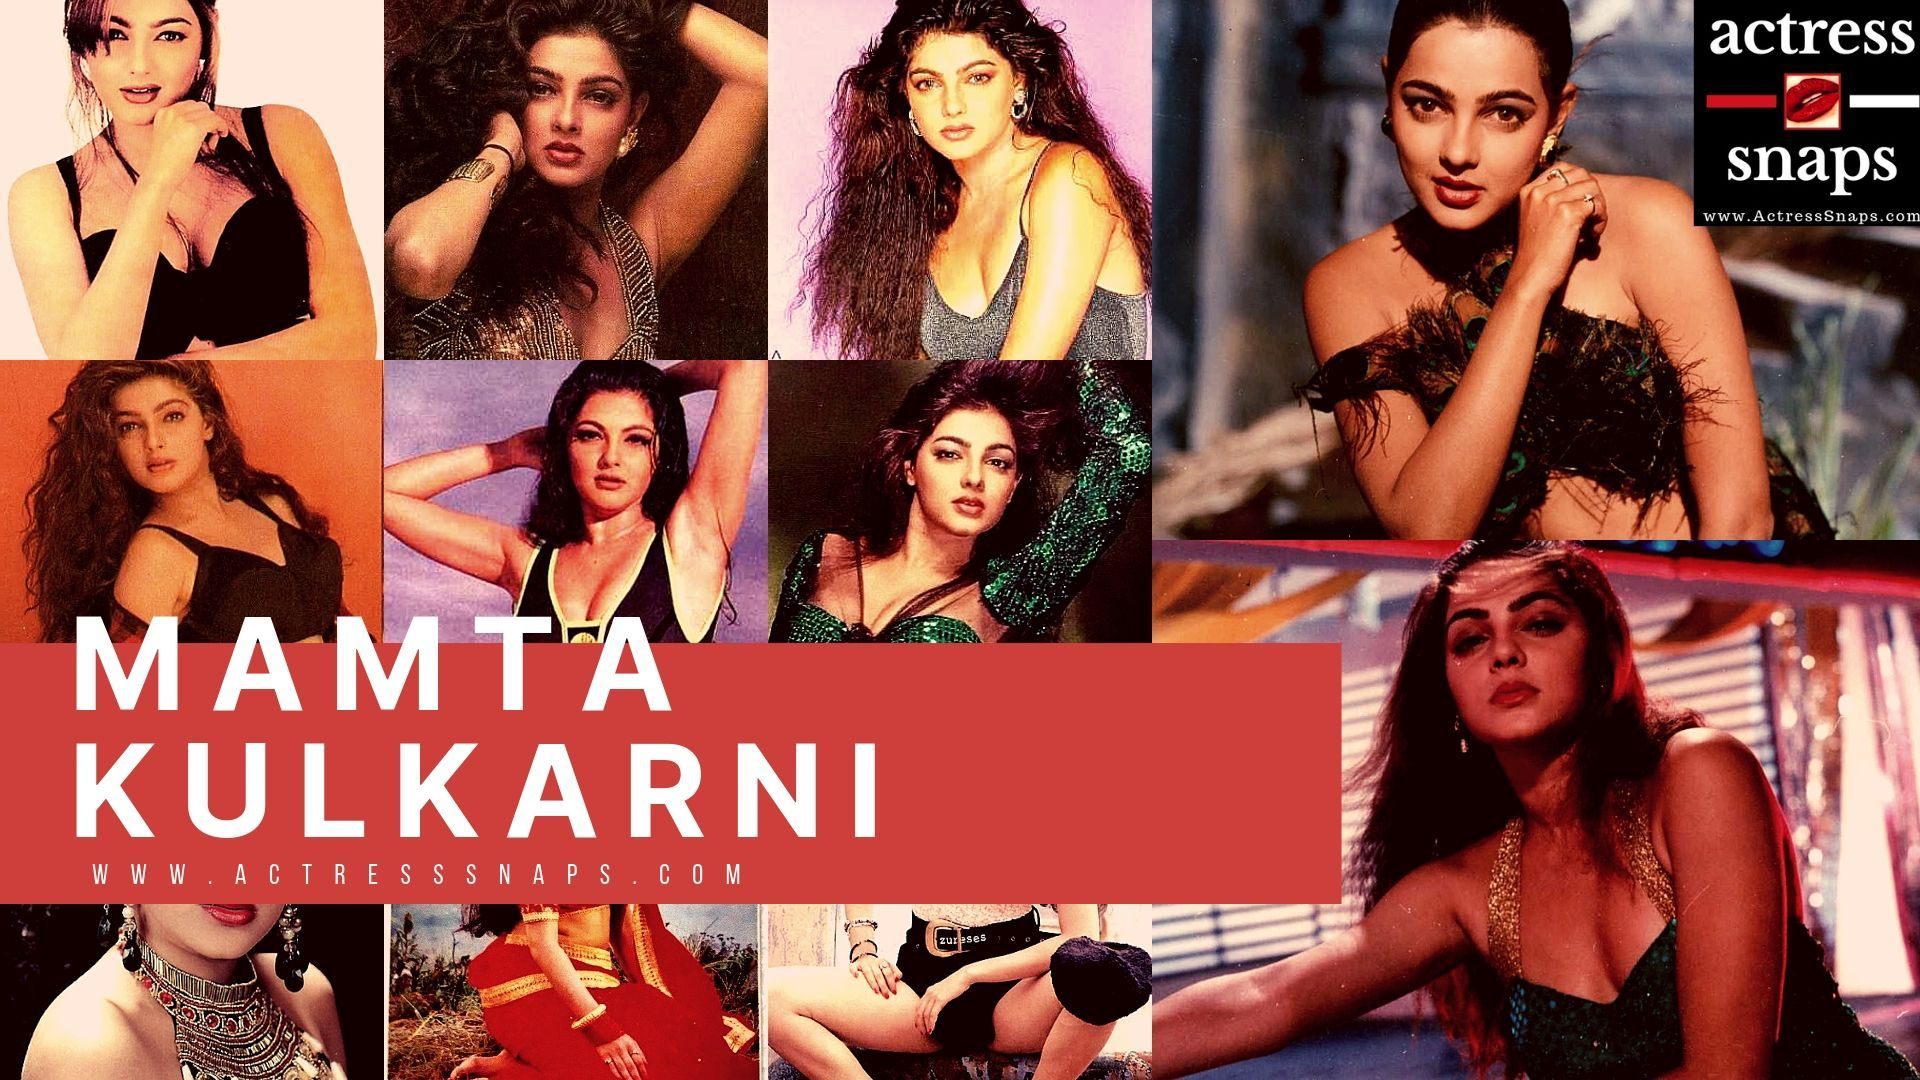 Sexy Mamta Kulkarni Photos and GIFs - Sexy Actress Pictures | Hot Actress Pictures - ActressSnaps.com